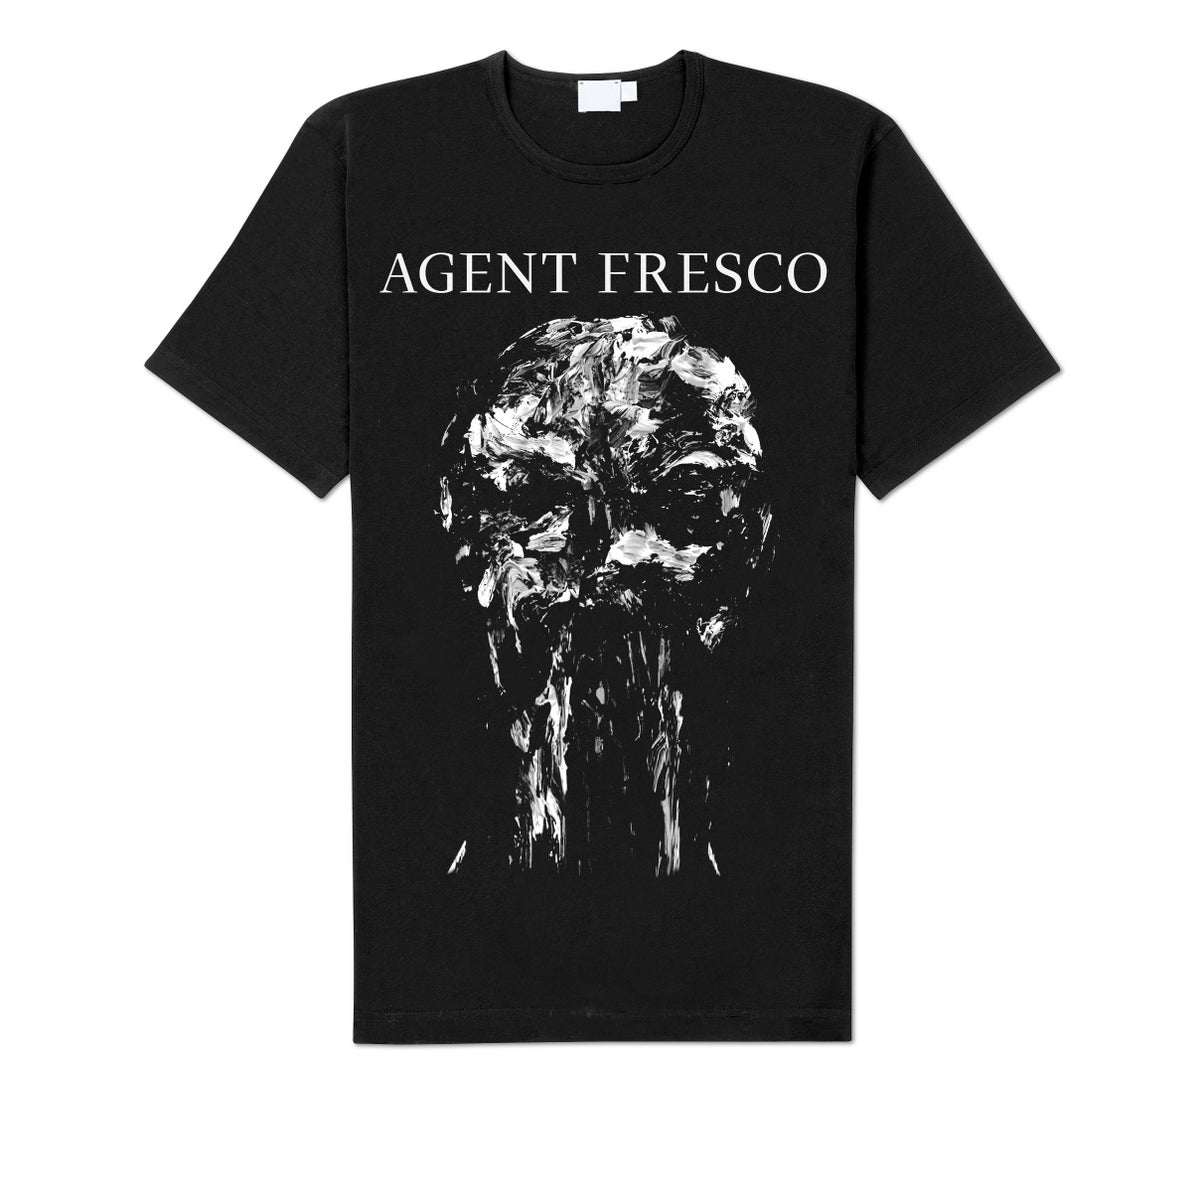 "Image of Agent Fresco ""Dark Water"" Shirt"